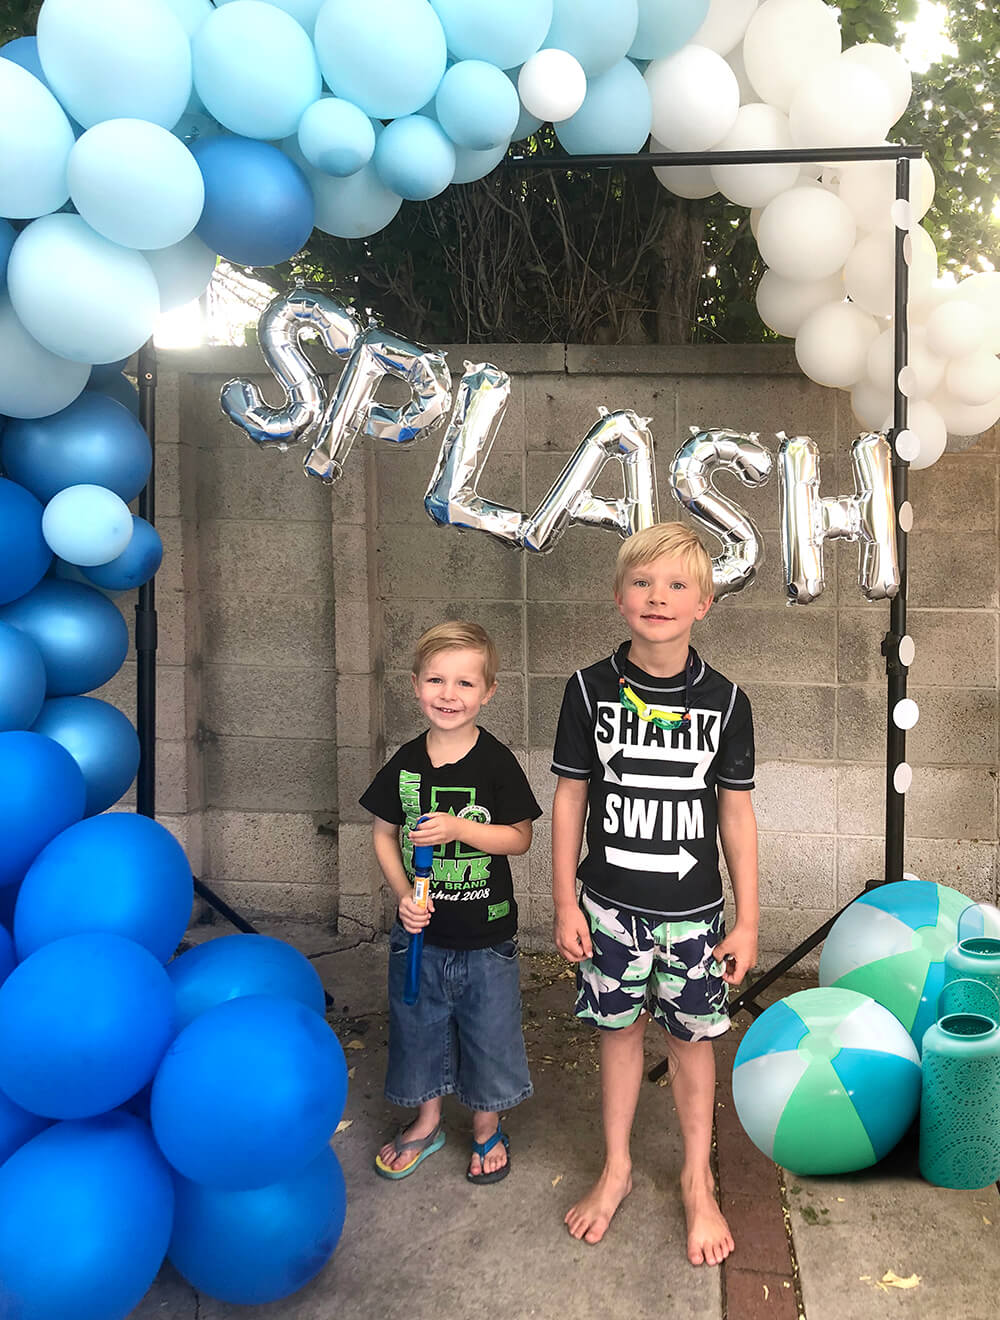 Make a Splash pool party backdrop